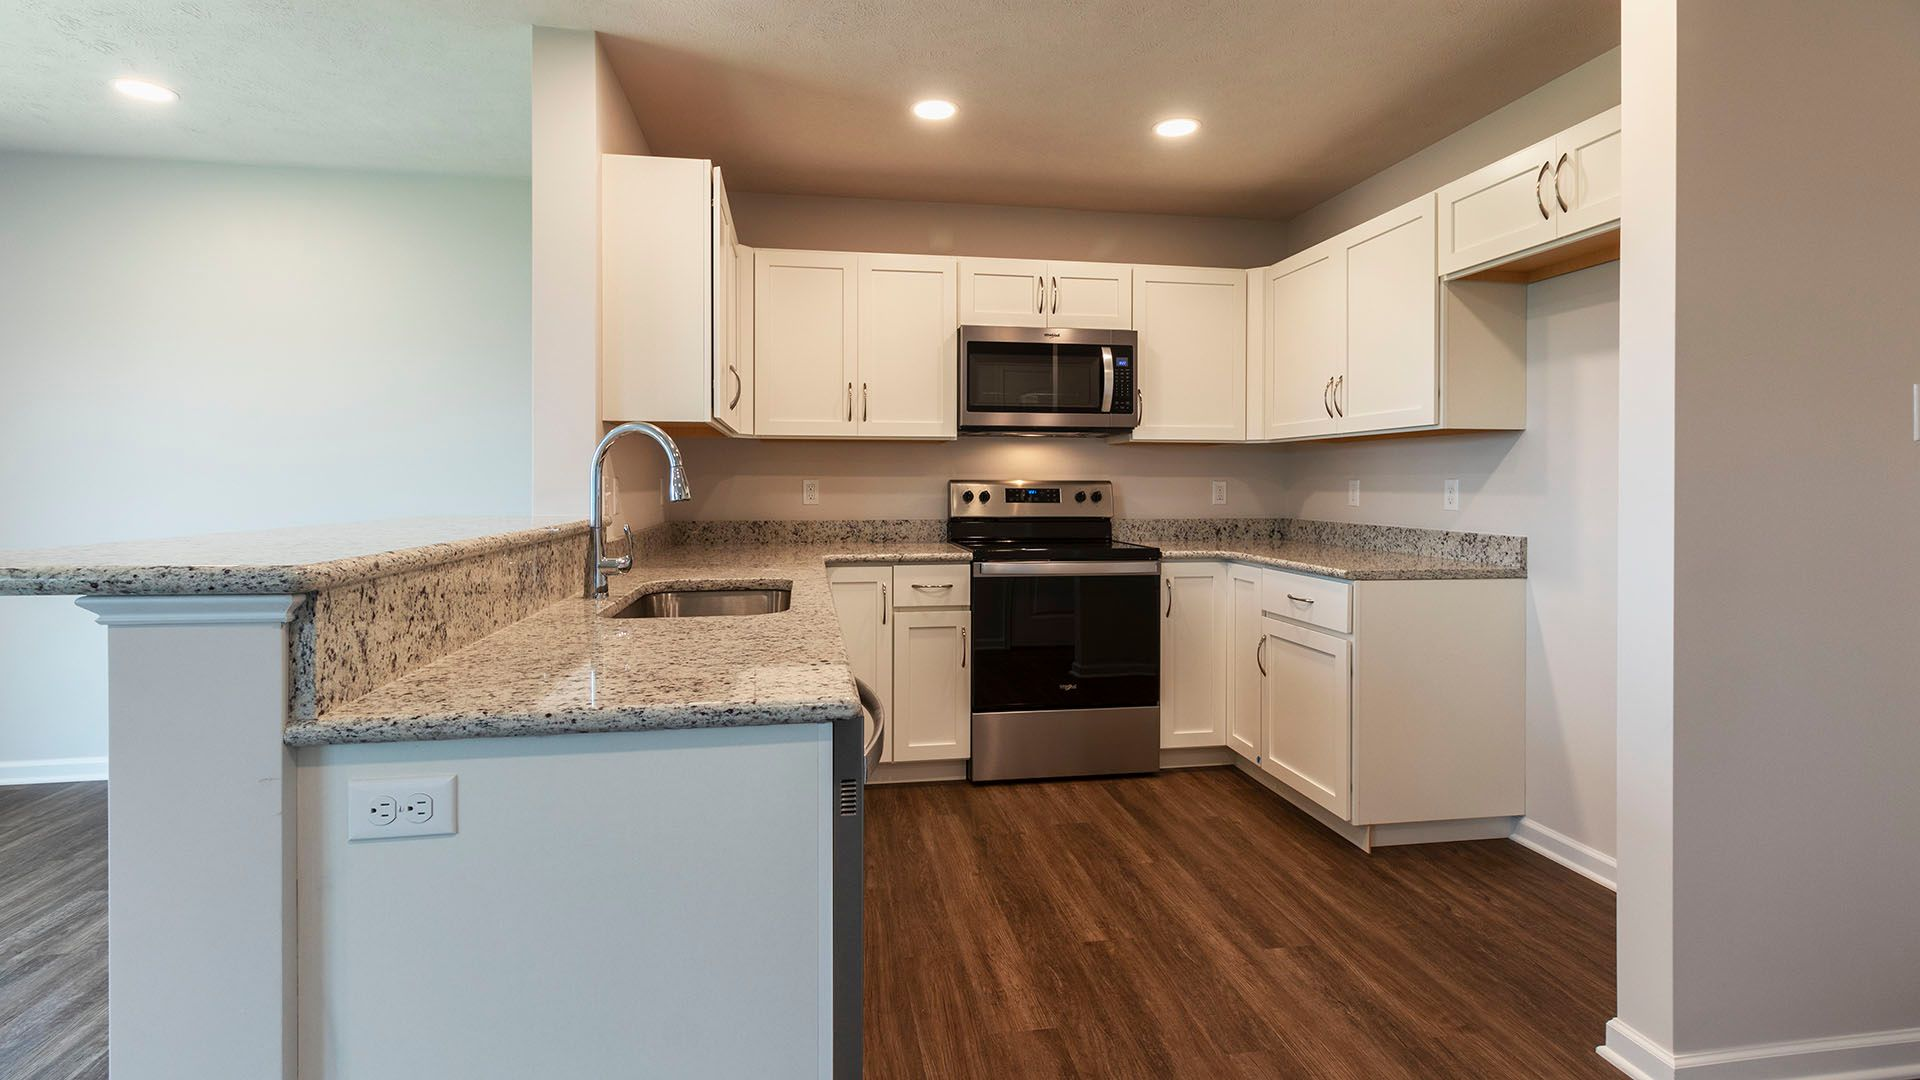 Kitchen featured in the Cedarwood By S & A Homes in Altoona, PA